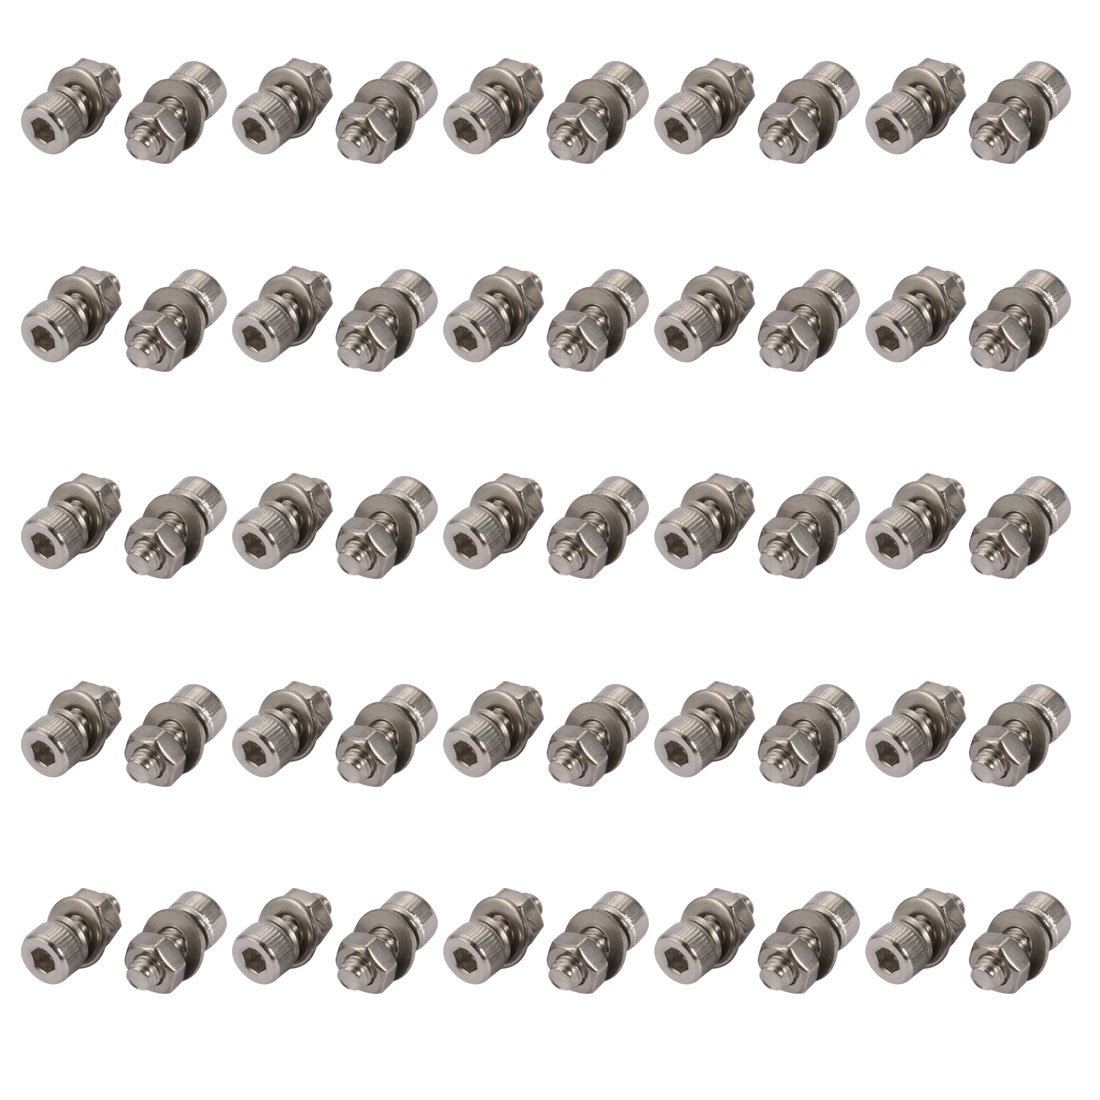 50pcs M4x10mm 304 Stainless Steel Knurled Hex Socket Head Bolts w Nut Washer